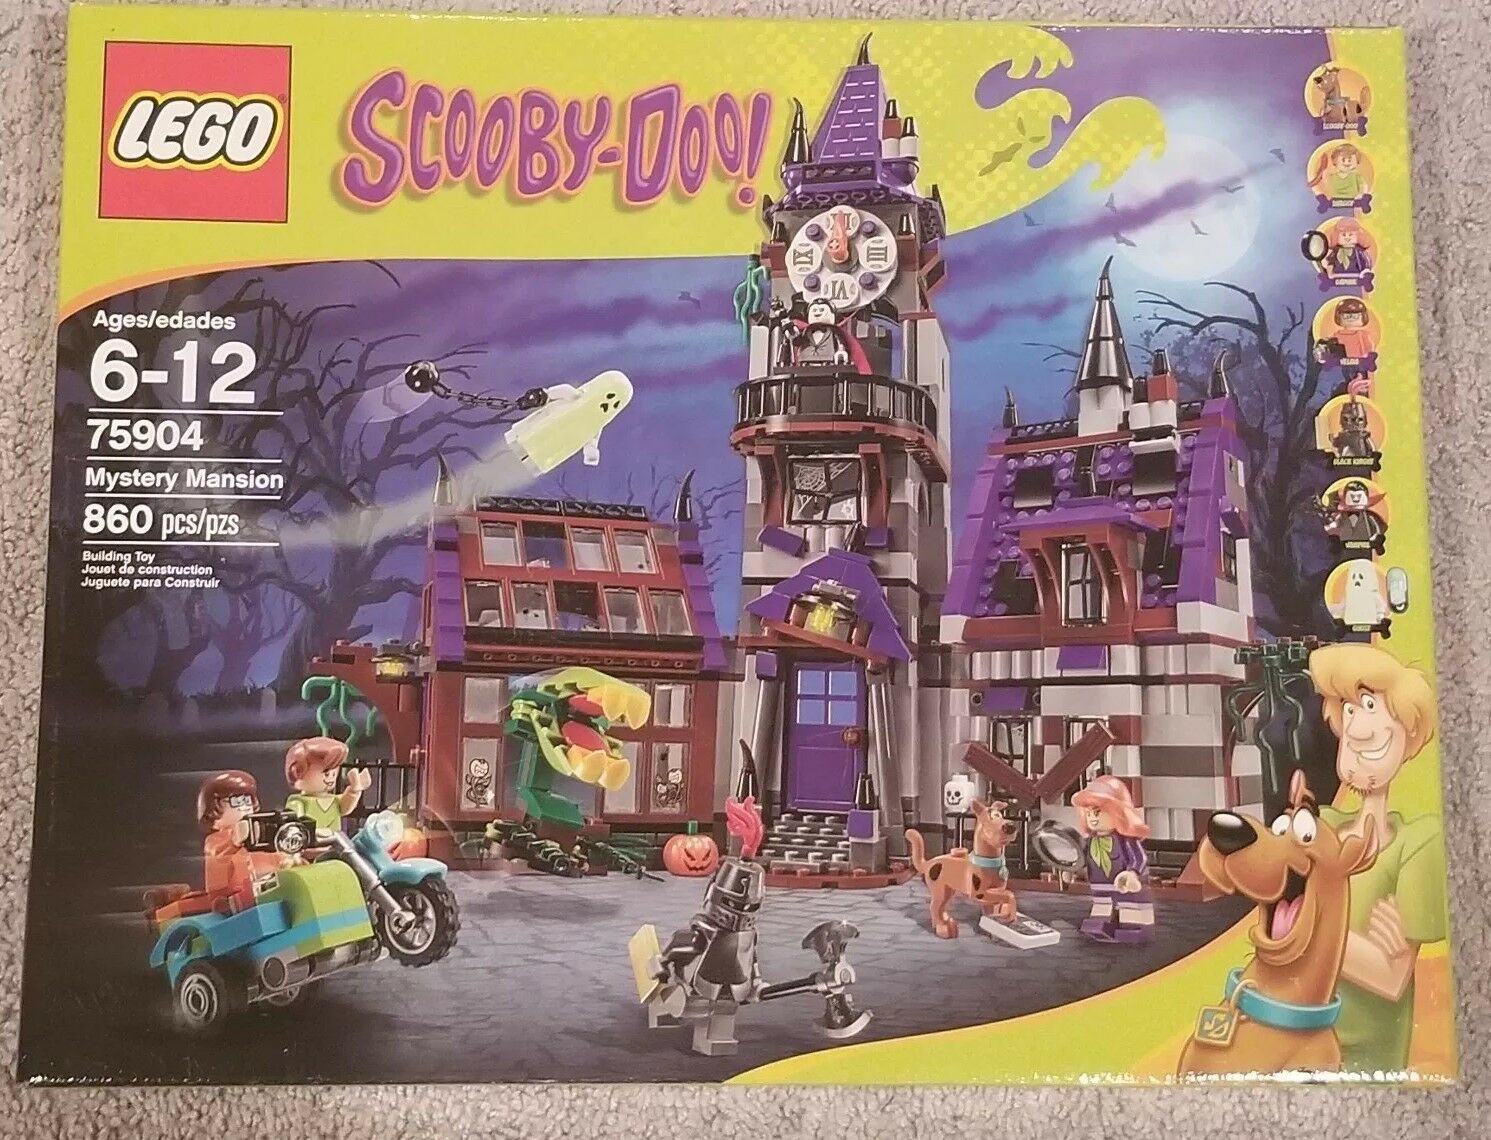 Lego Scooby -Doo Mystery Mansion (7504)